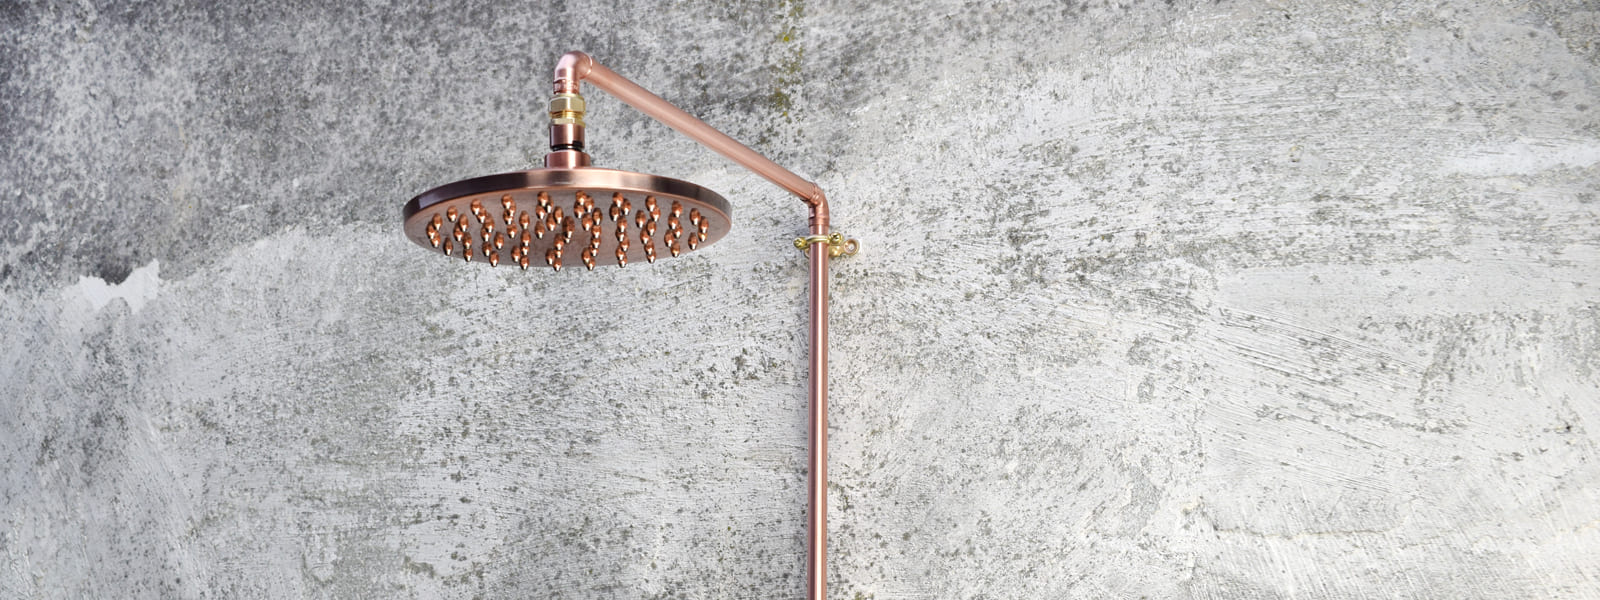 copper showers-industrial styled bathroom-proper copper design